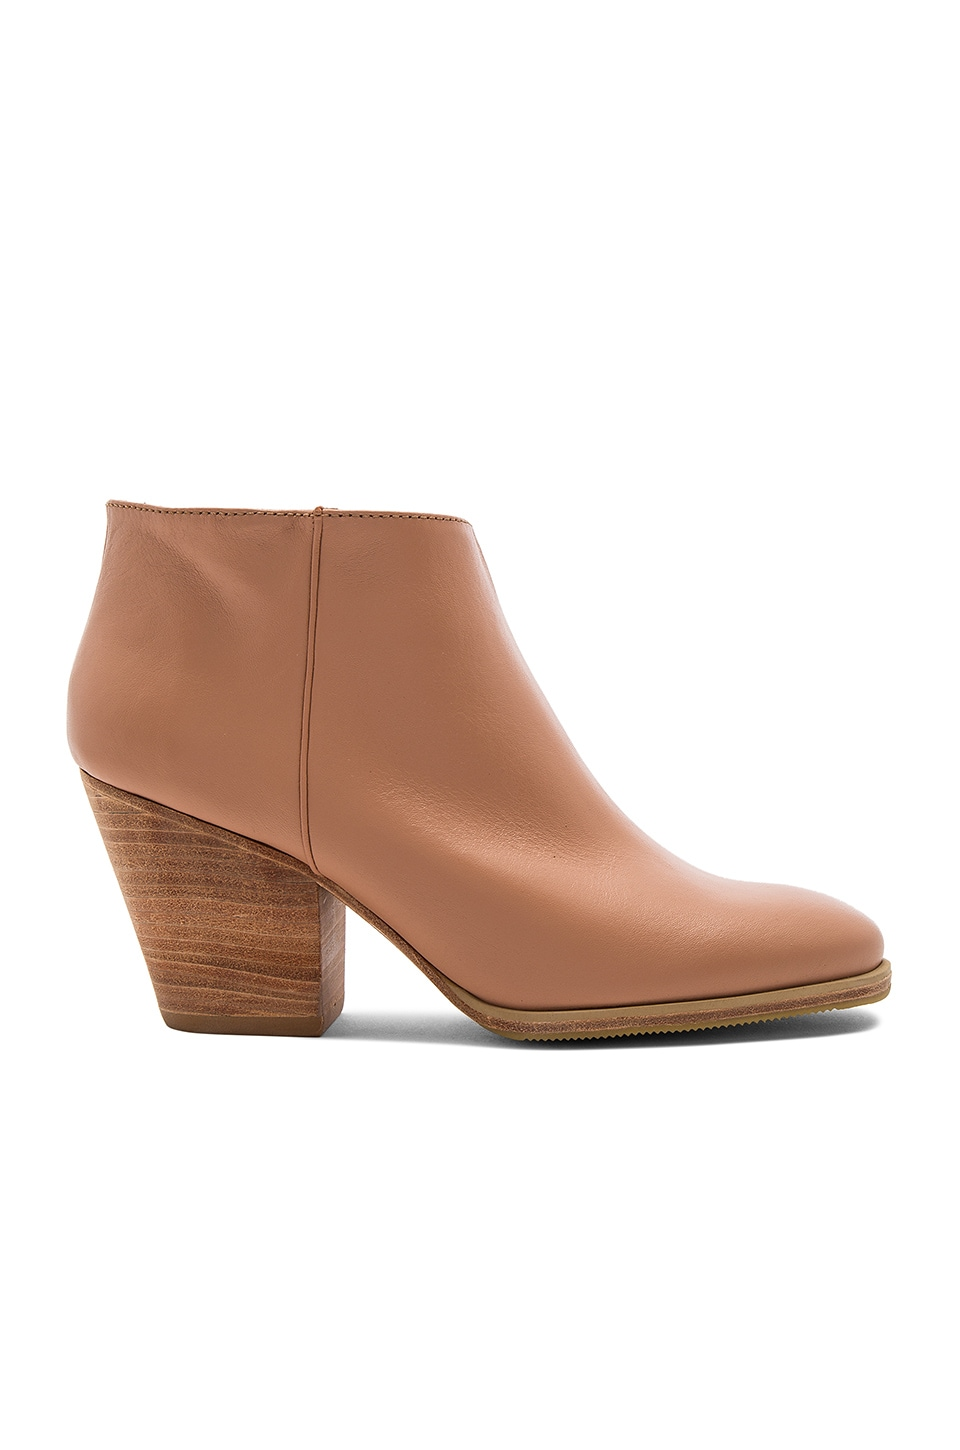 Rachel Comey Mars Bootie in Polished Clay